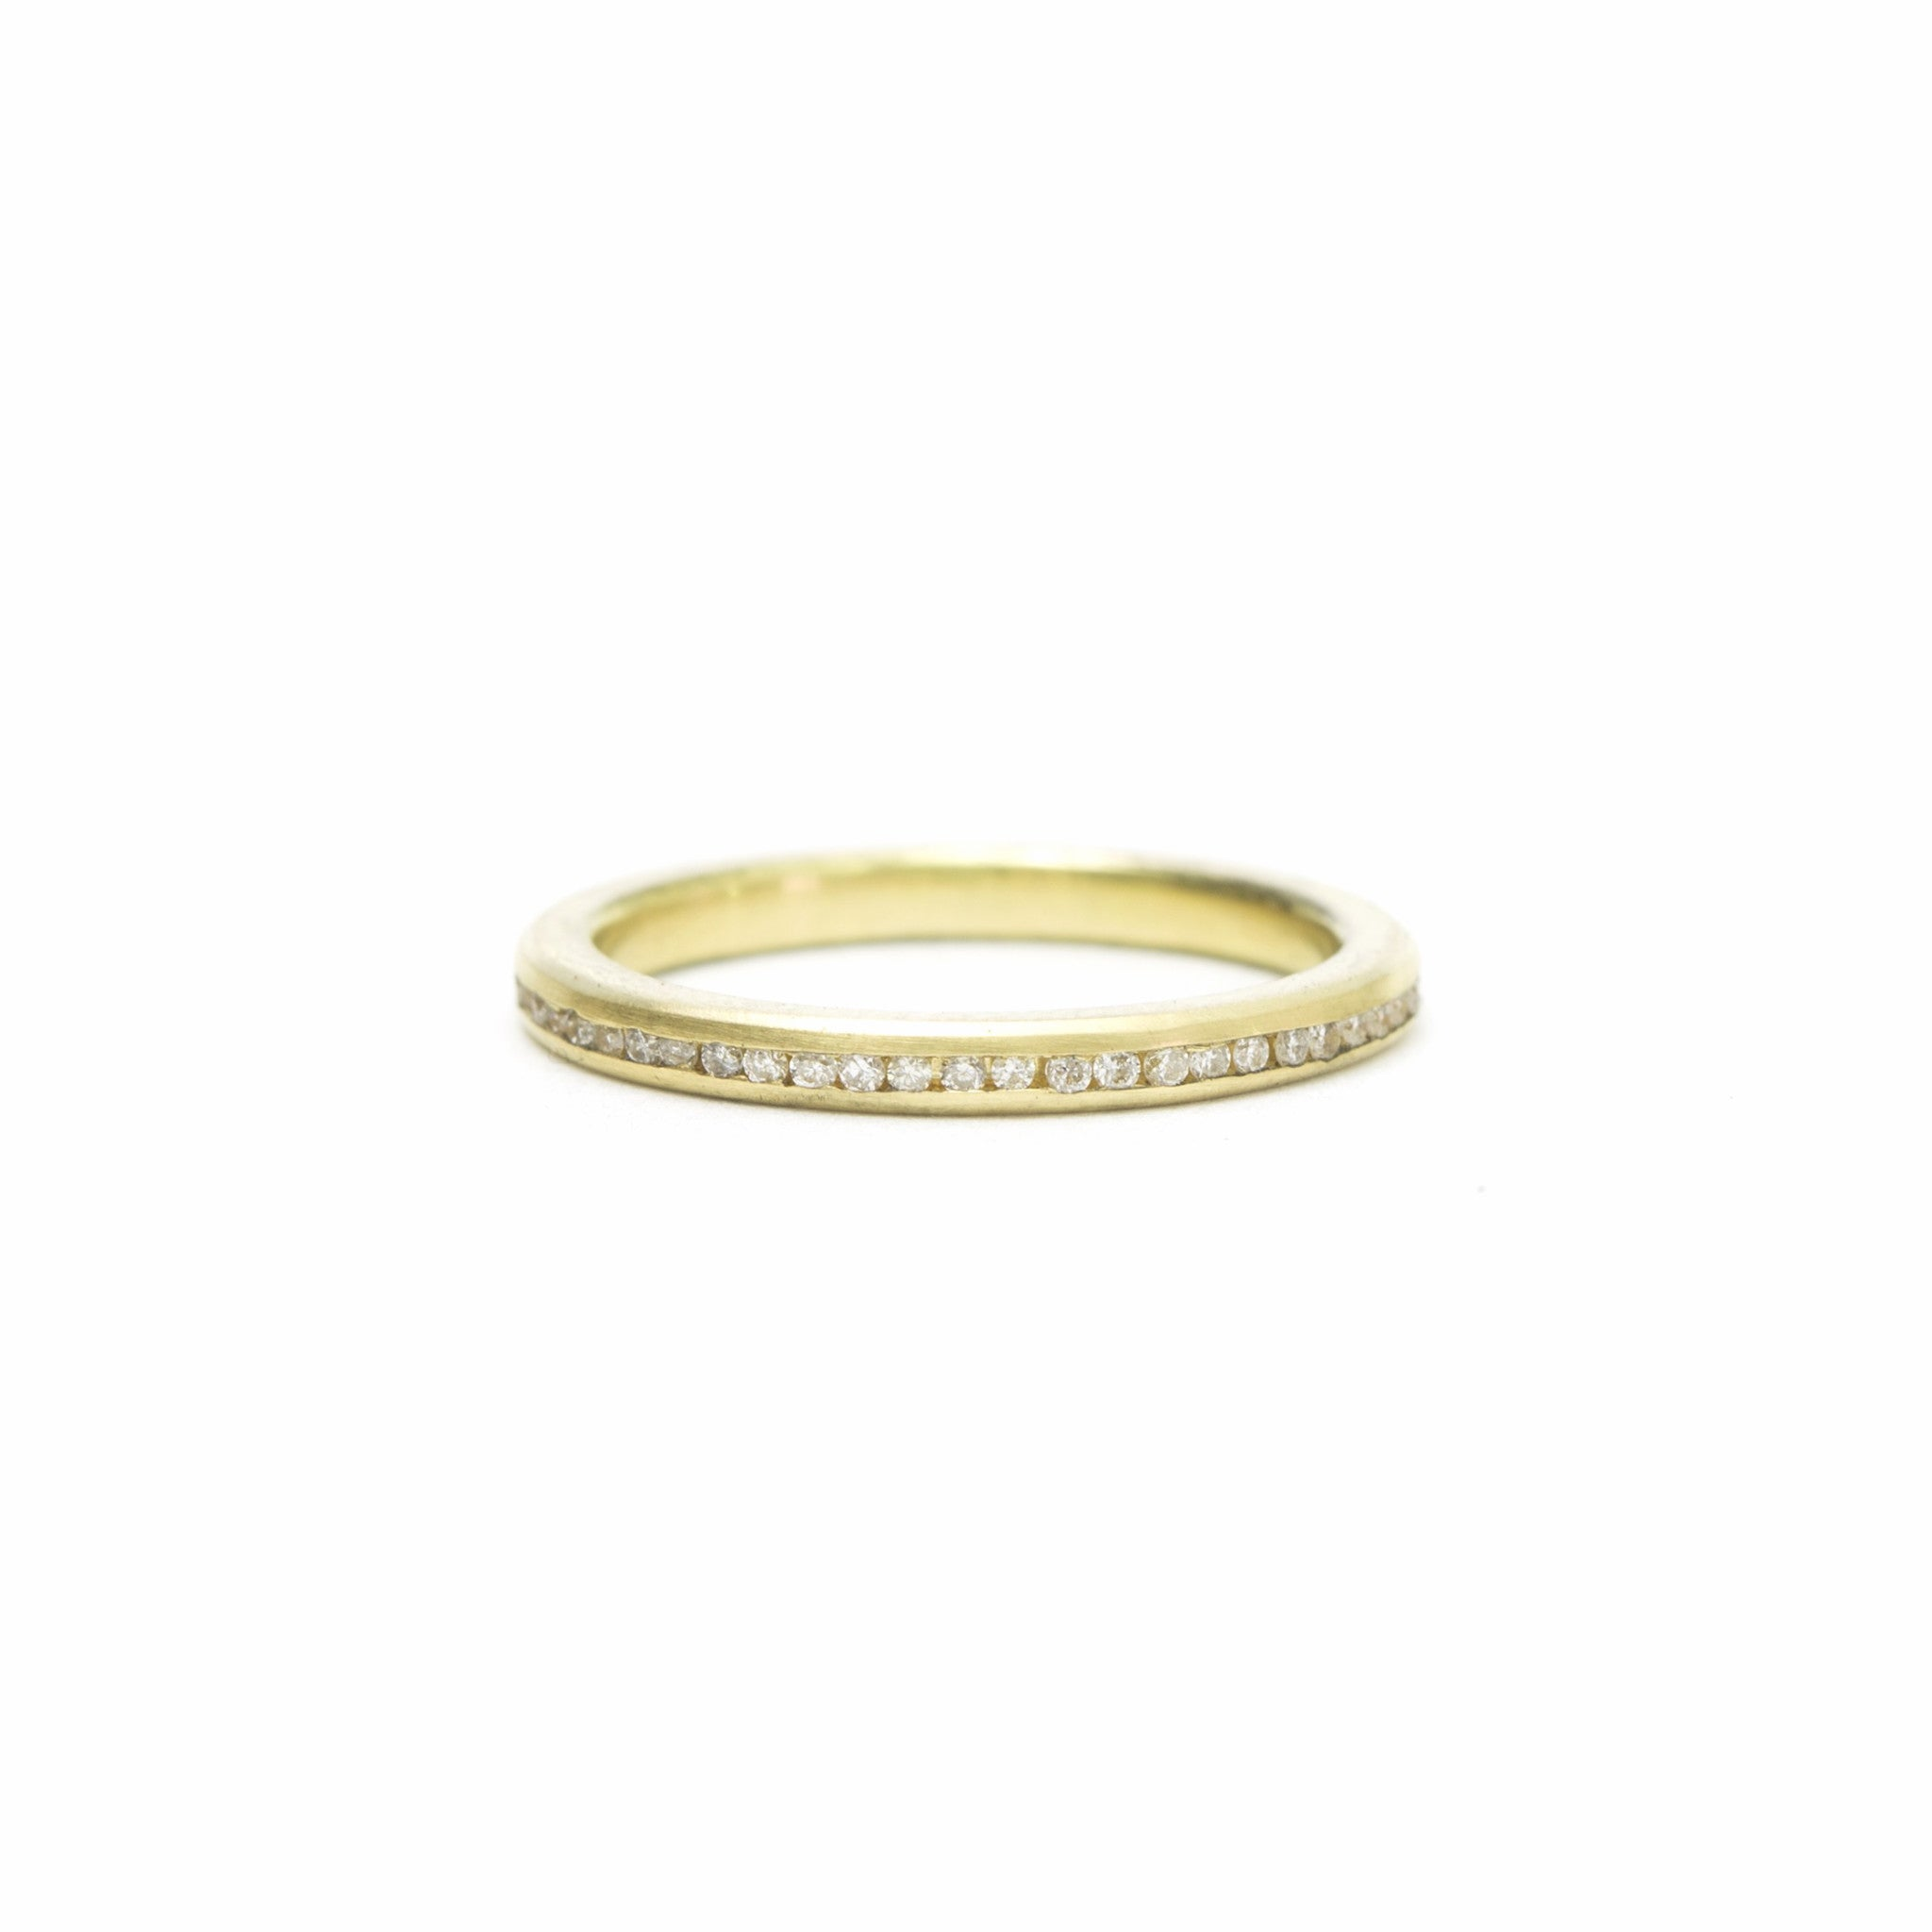 ring gold jewellery diamond top white cut wedding band rings in princess eternity